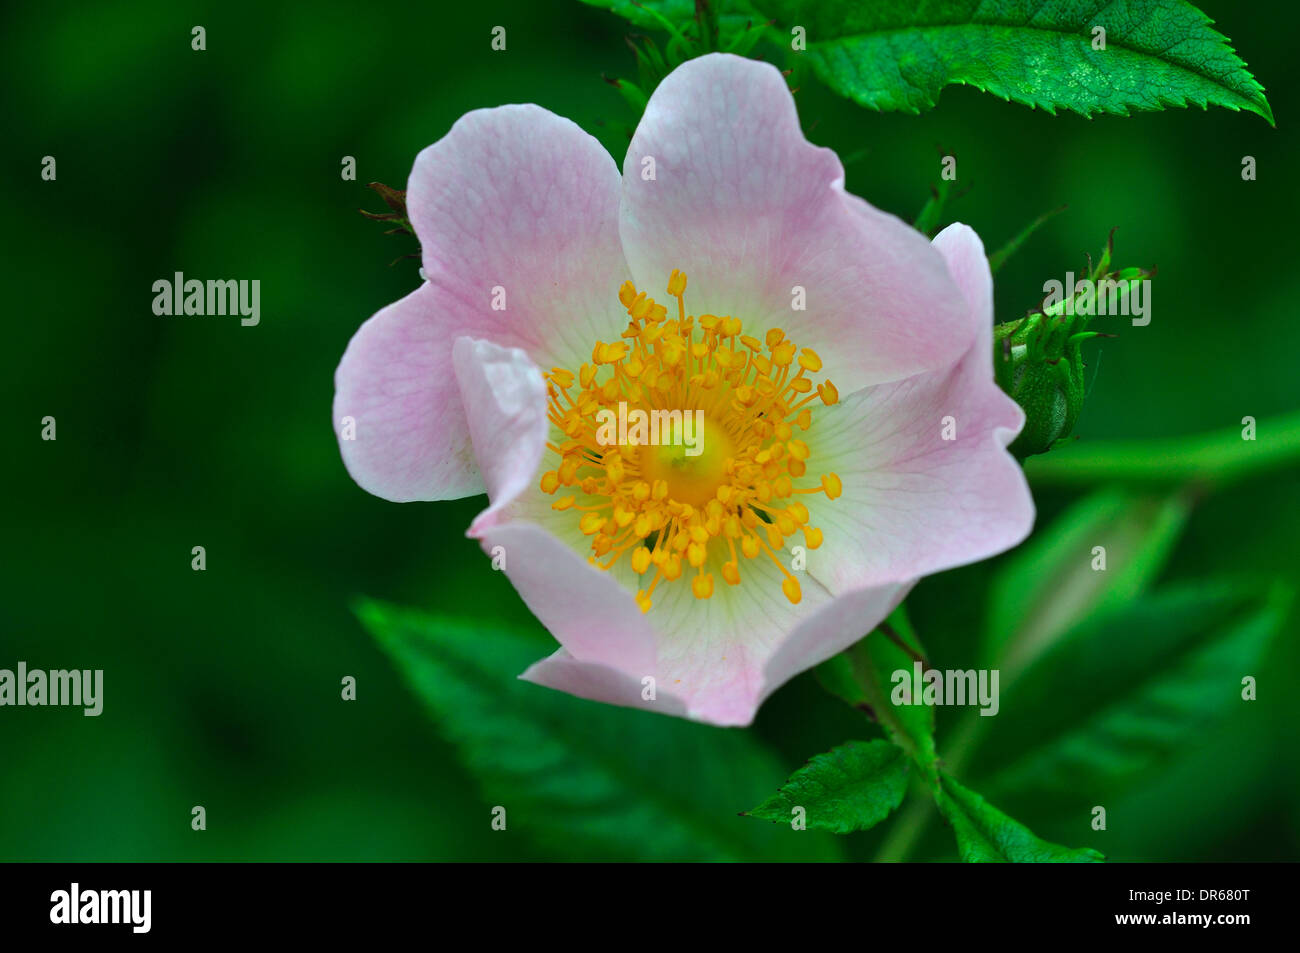 Un Chien Rose Pale Fleur Rose Uk Banque D Images Photo Stock